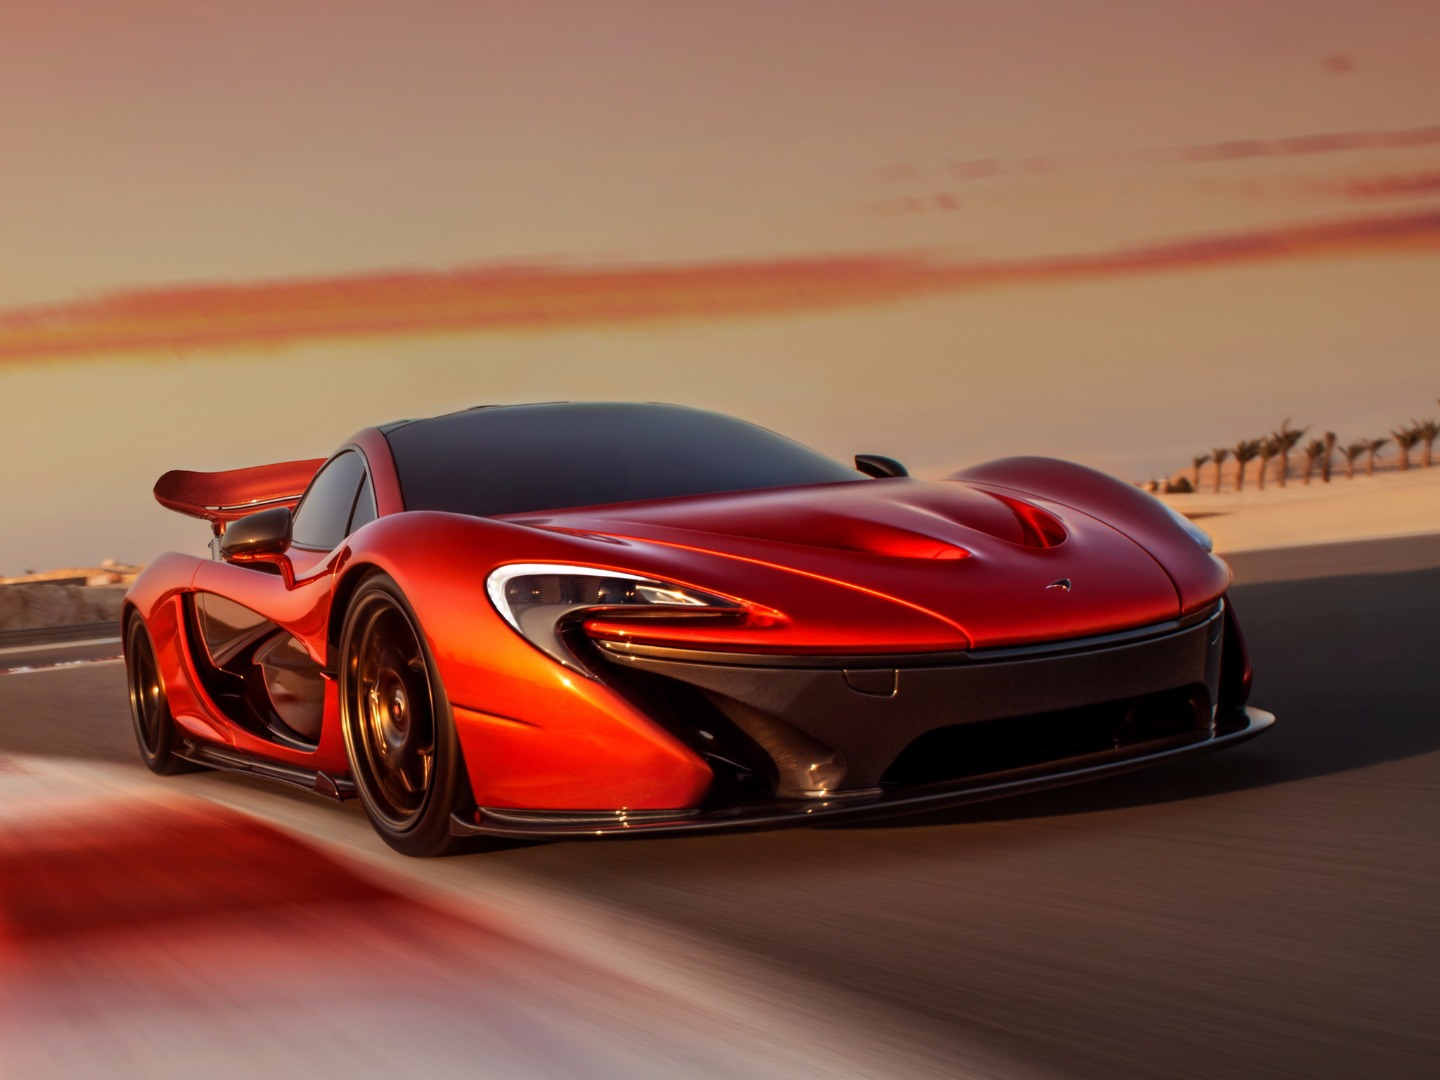 News Mclaren Confirms 3 Seater Hyper Gt The Next F1